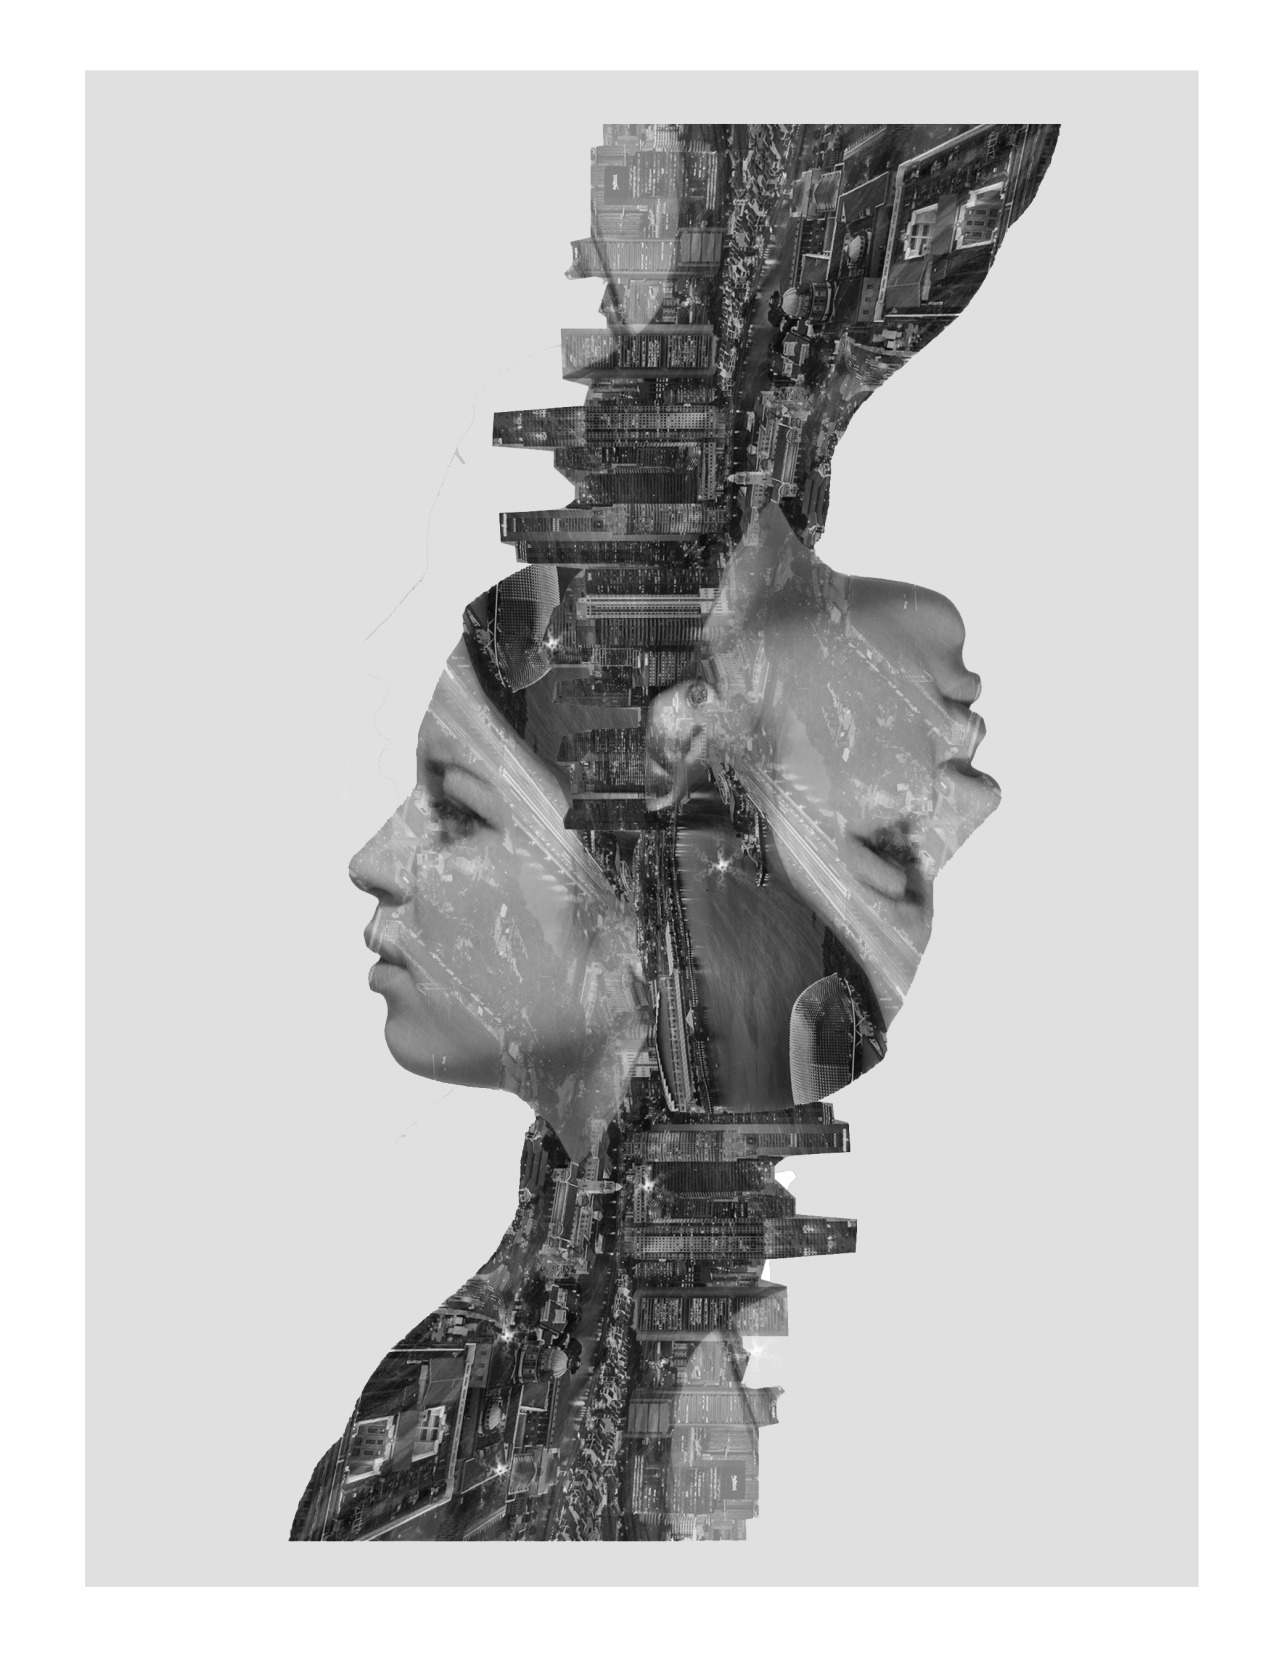 Double Exposure Effect - Singapore  http://attackofthepenis.tumblr.com/